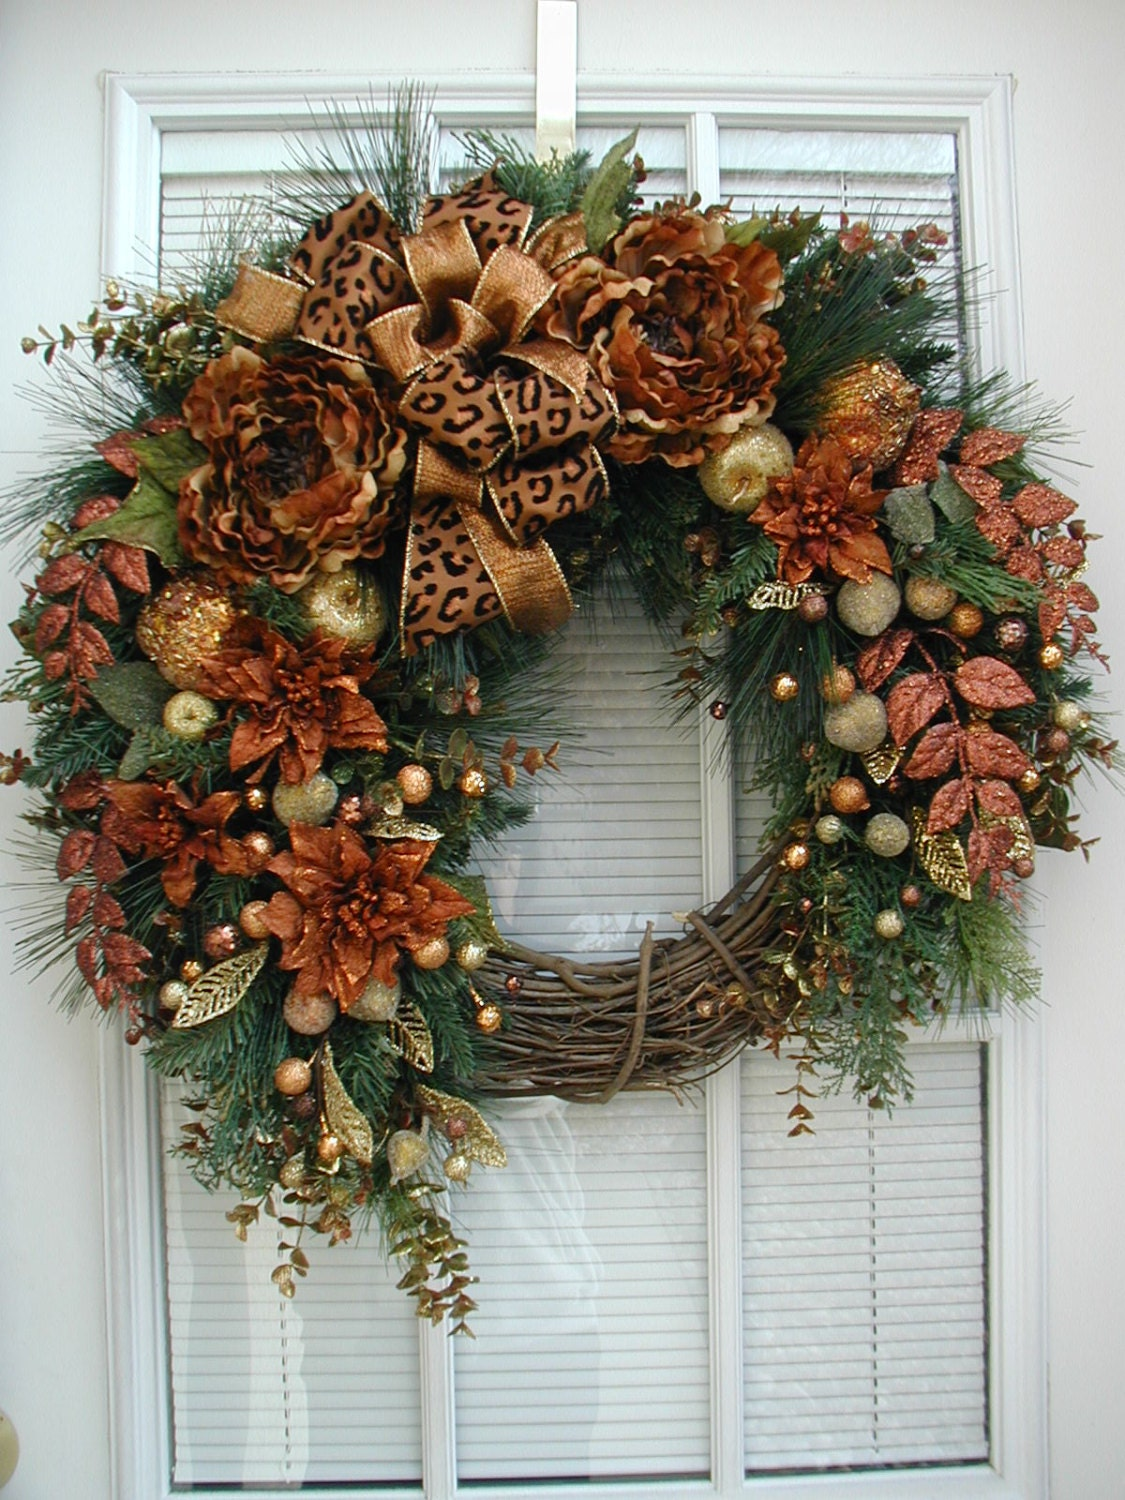 Winter wreath after christmas wreath large spray brown copper for Front door xmas wreaths